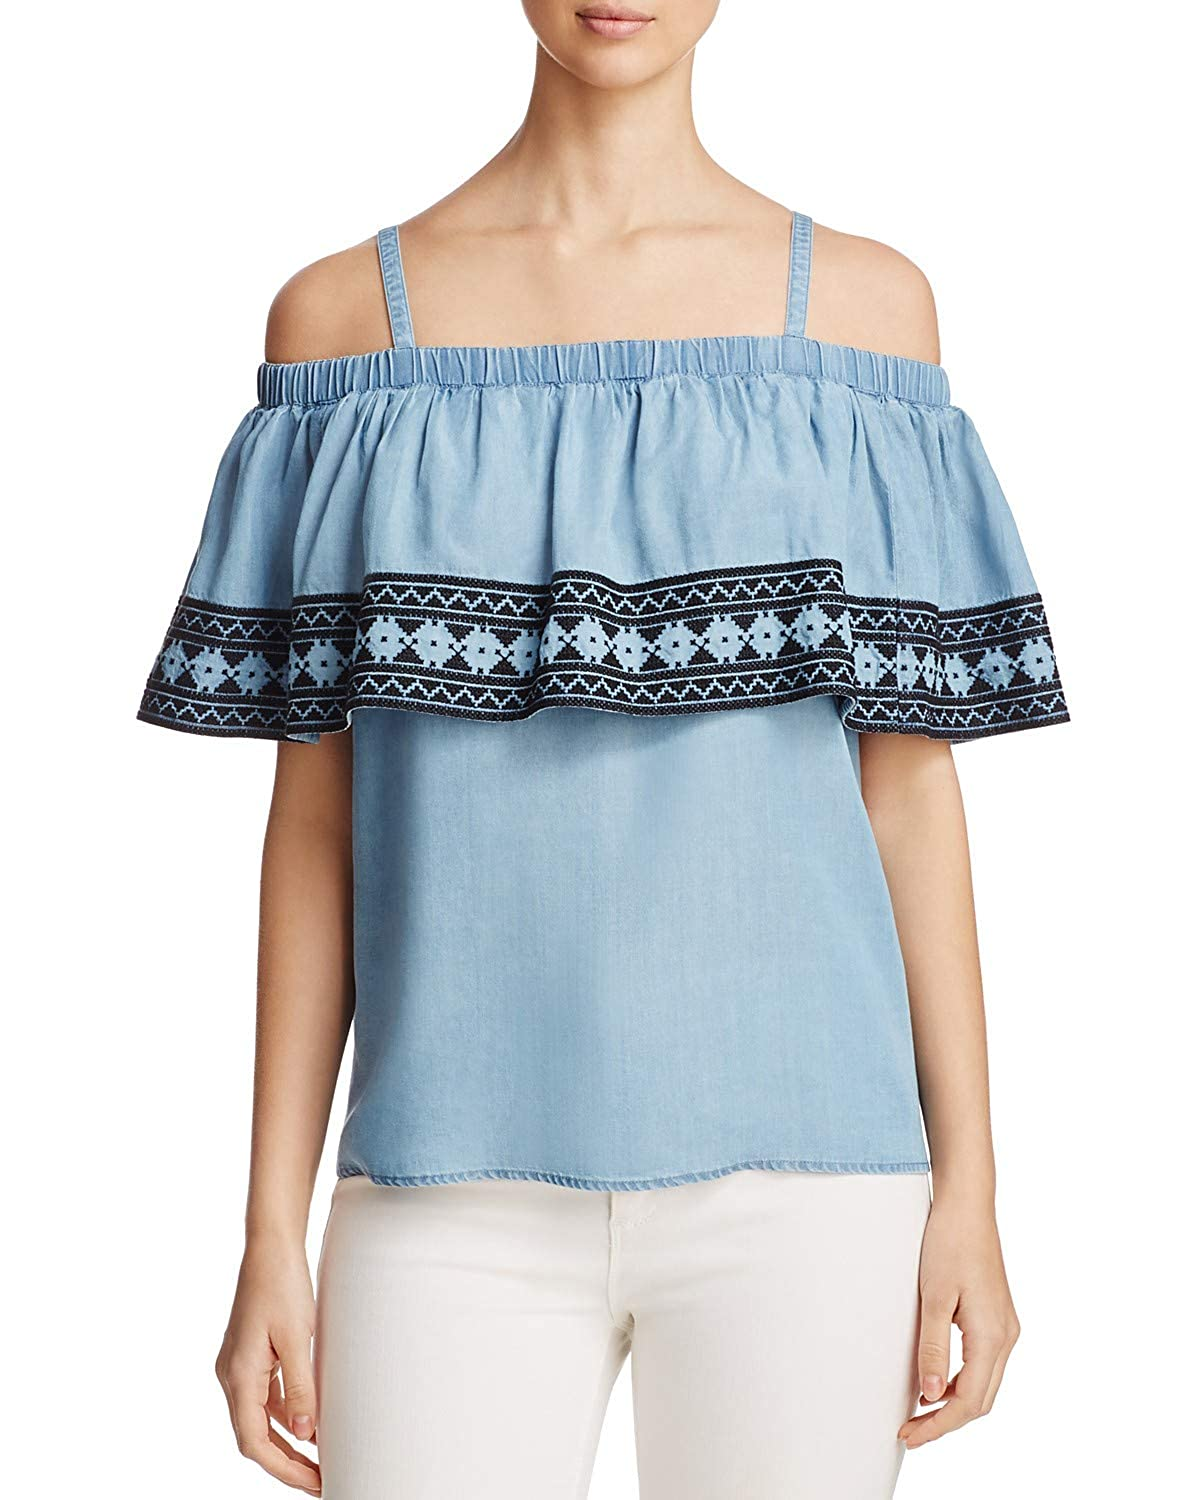 bluee Bagatelle Women's Ruffled Embroidered Cold Shoulder Top